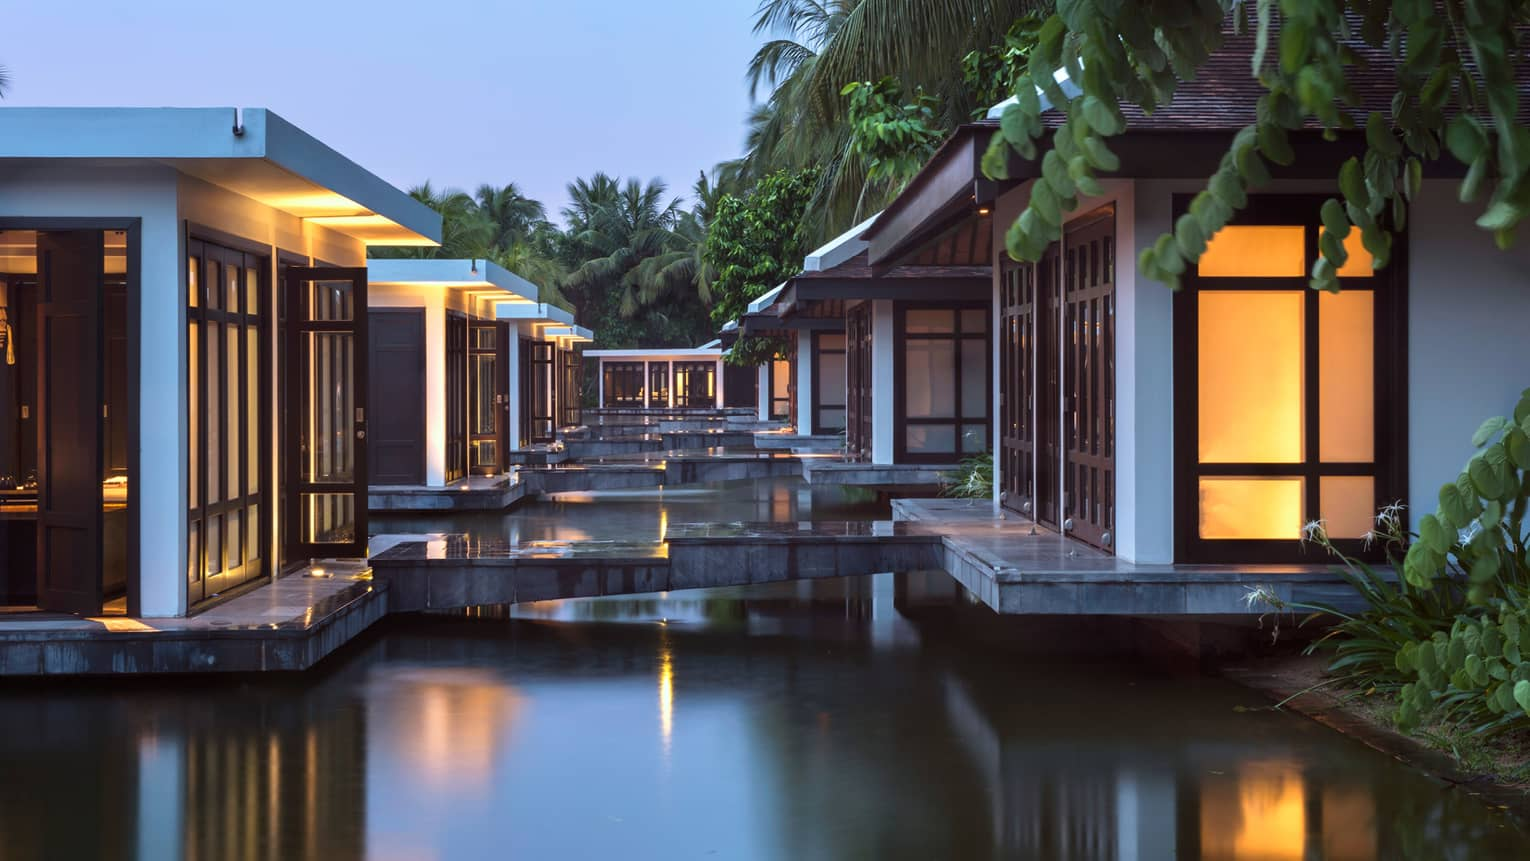 Spa villas over lotus pond connected by marble tile walkways at dusk